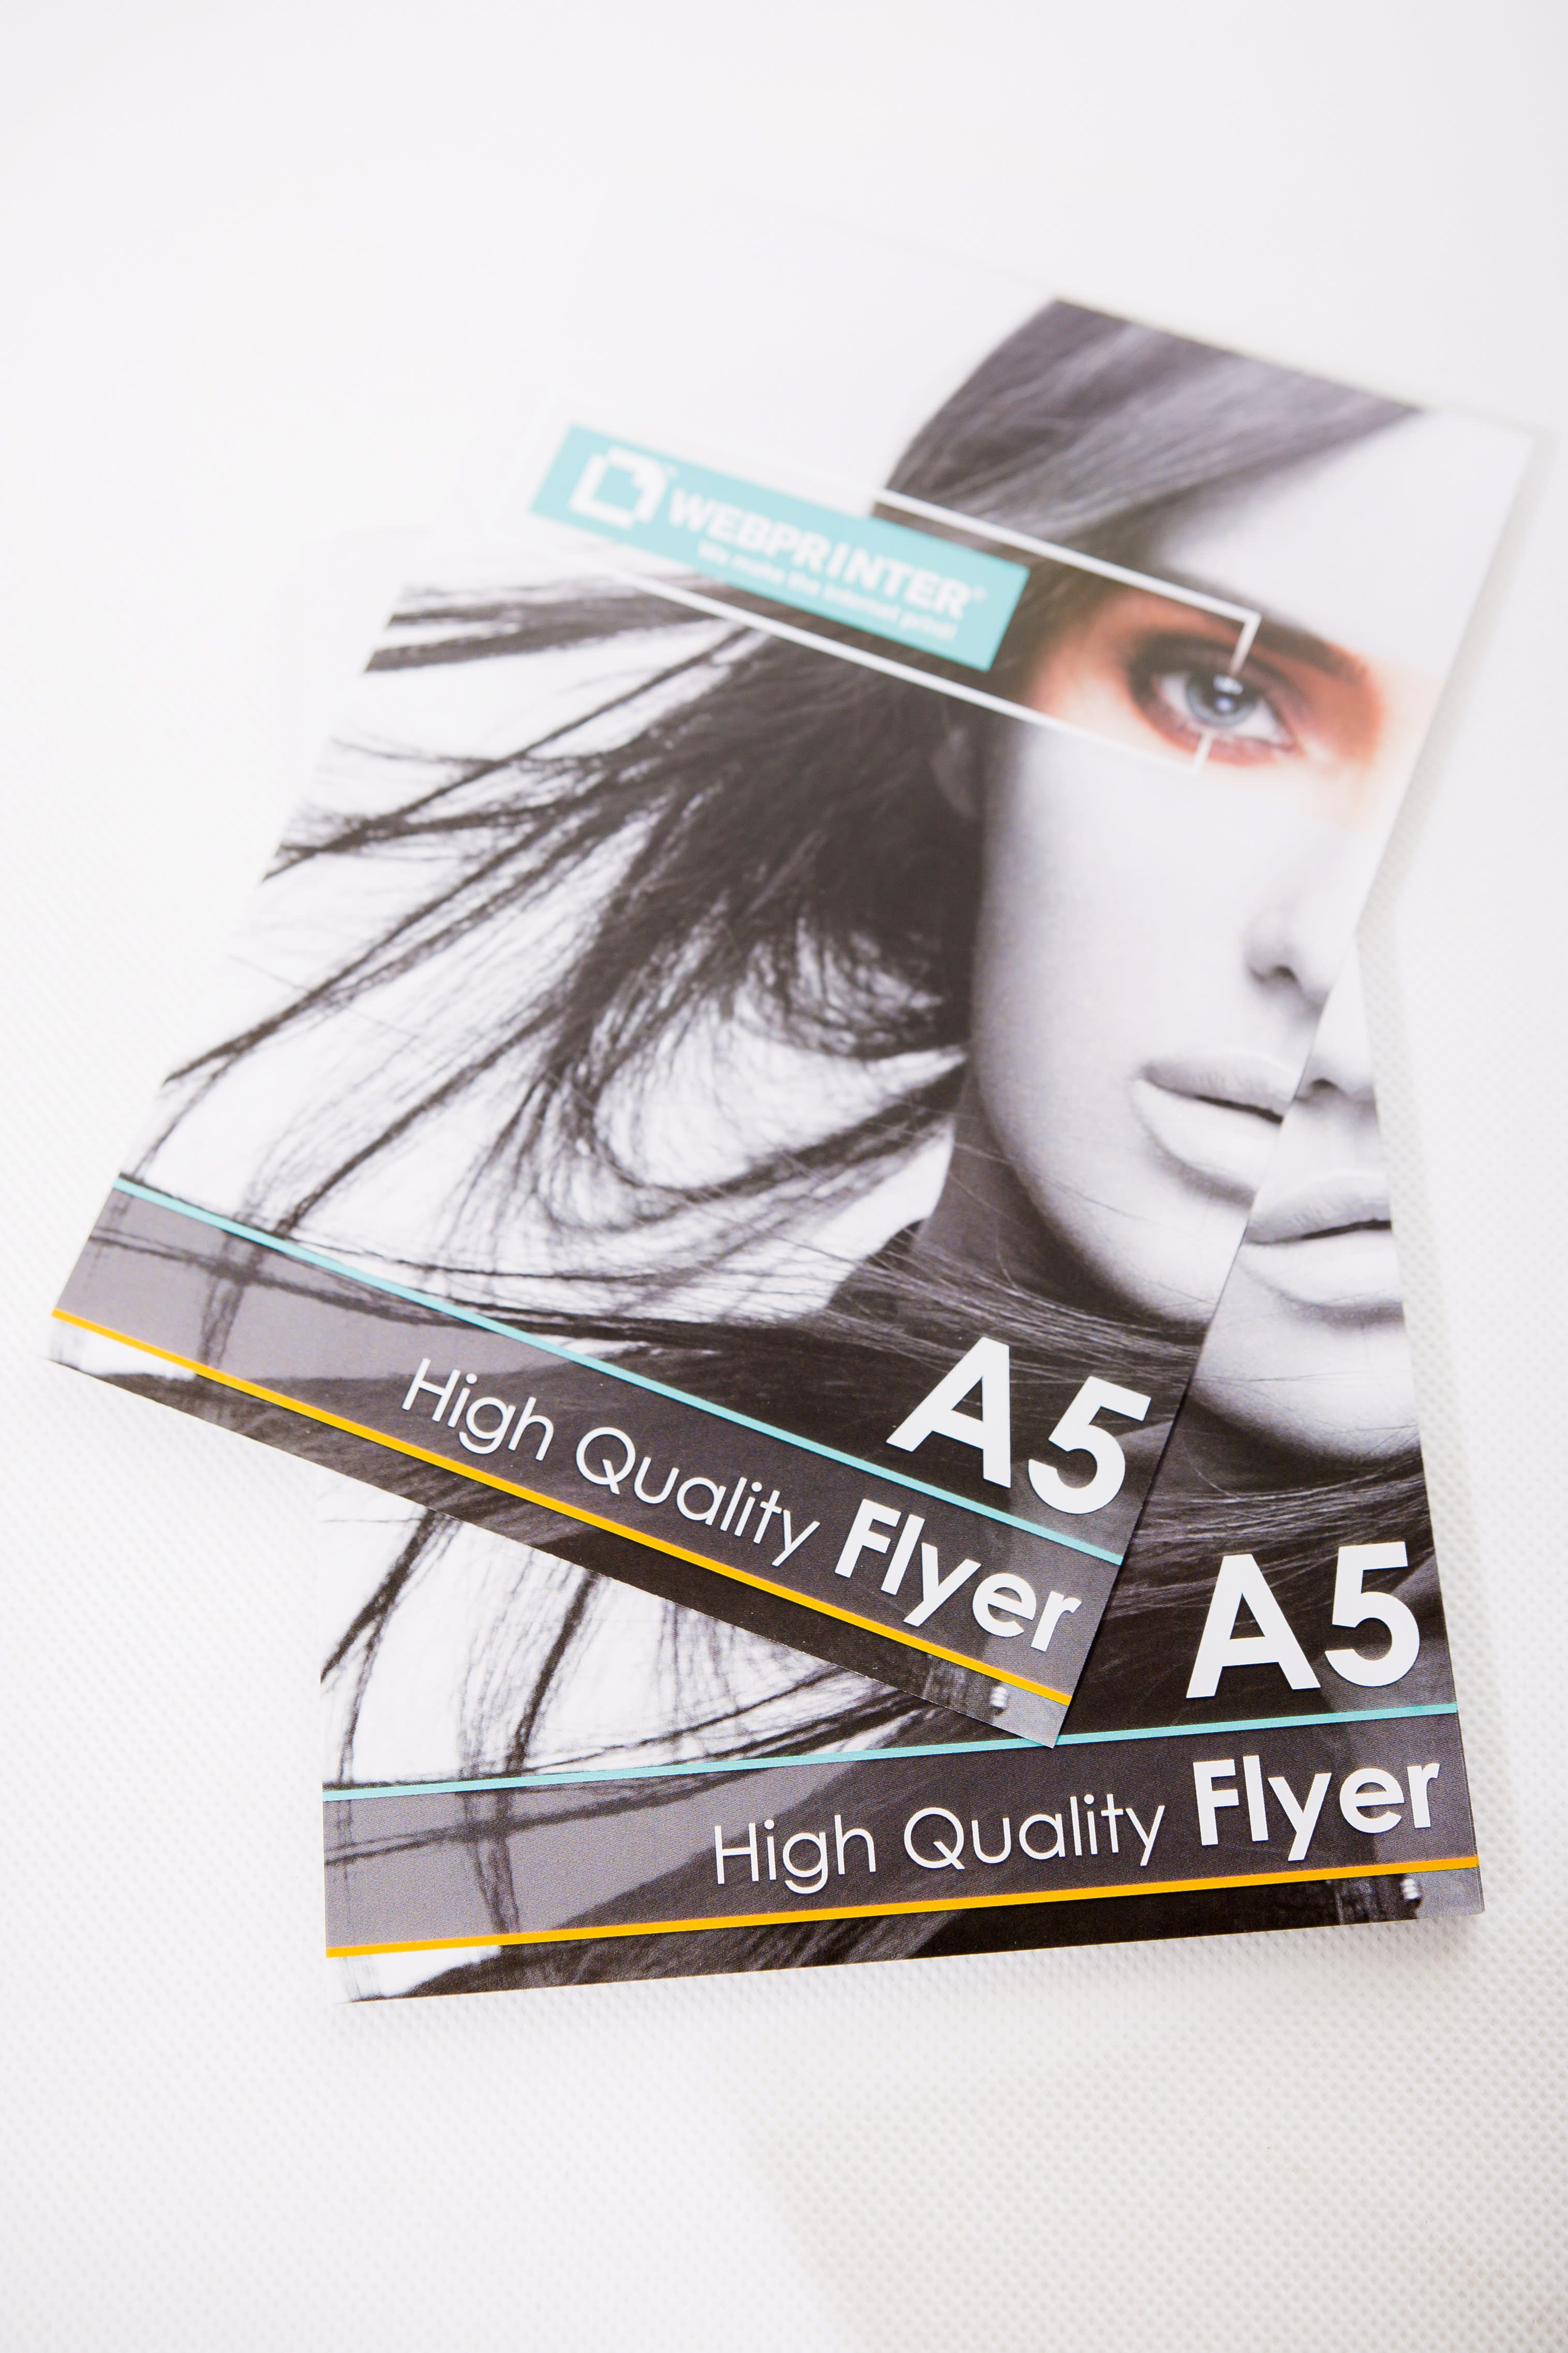 Select Sizes Flyers Size 99x210mm A6 Flyers Size 105x148mm A5